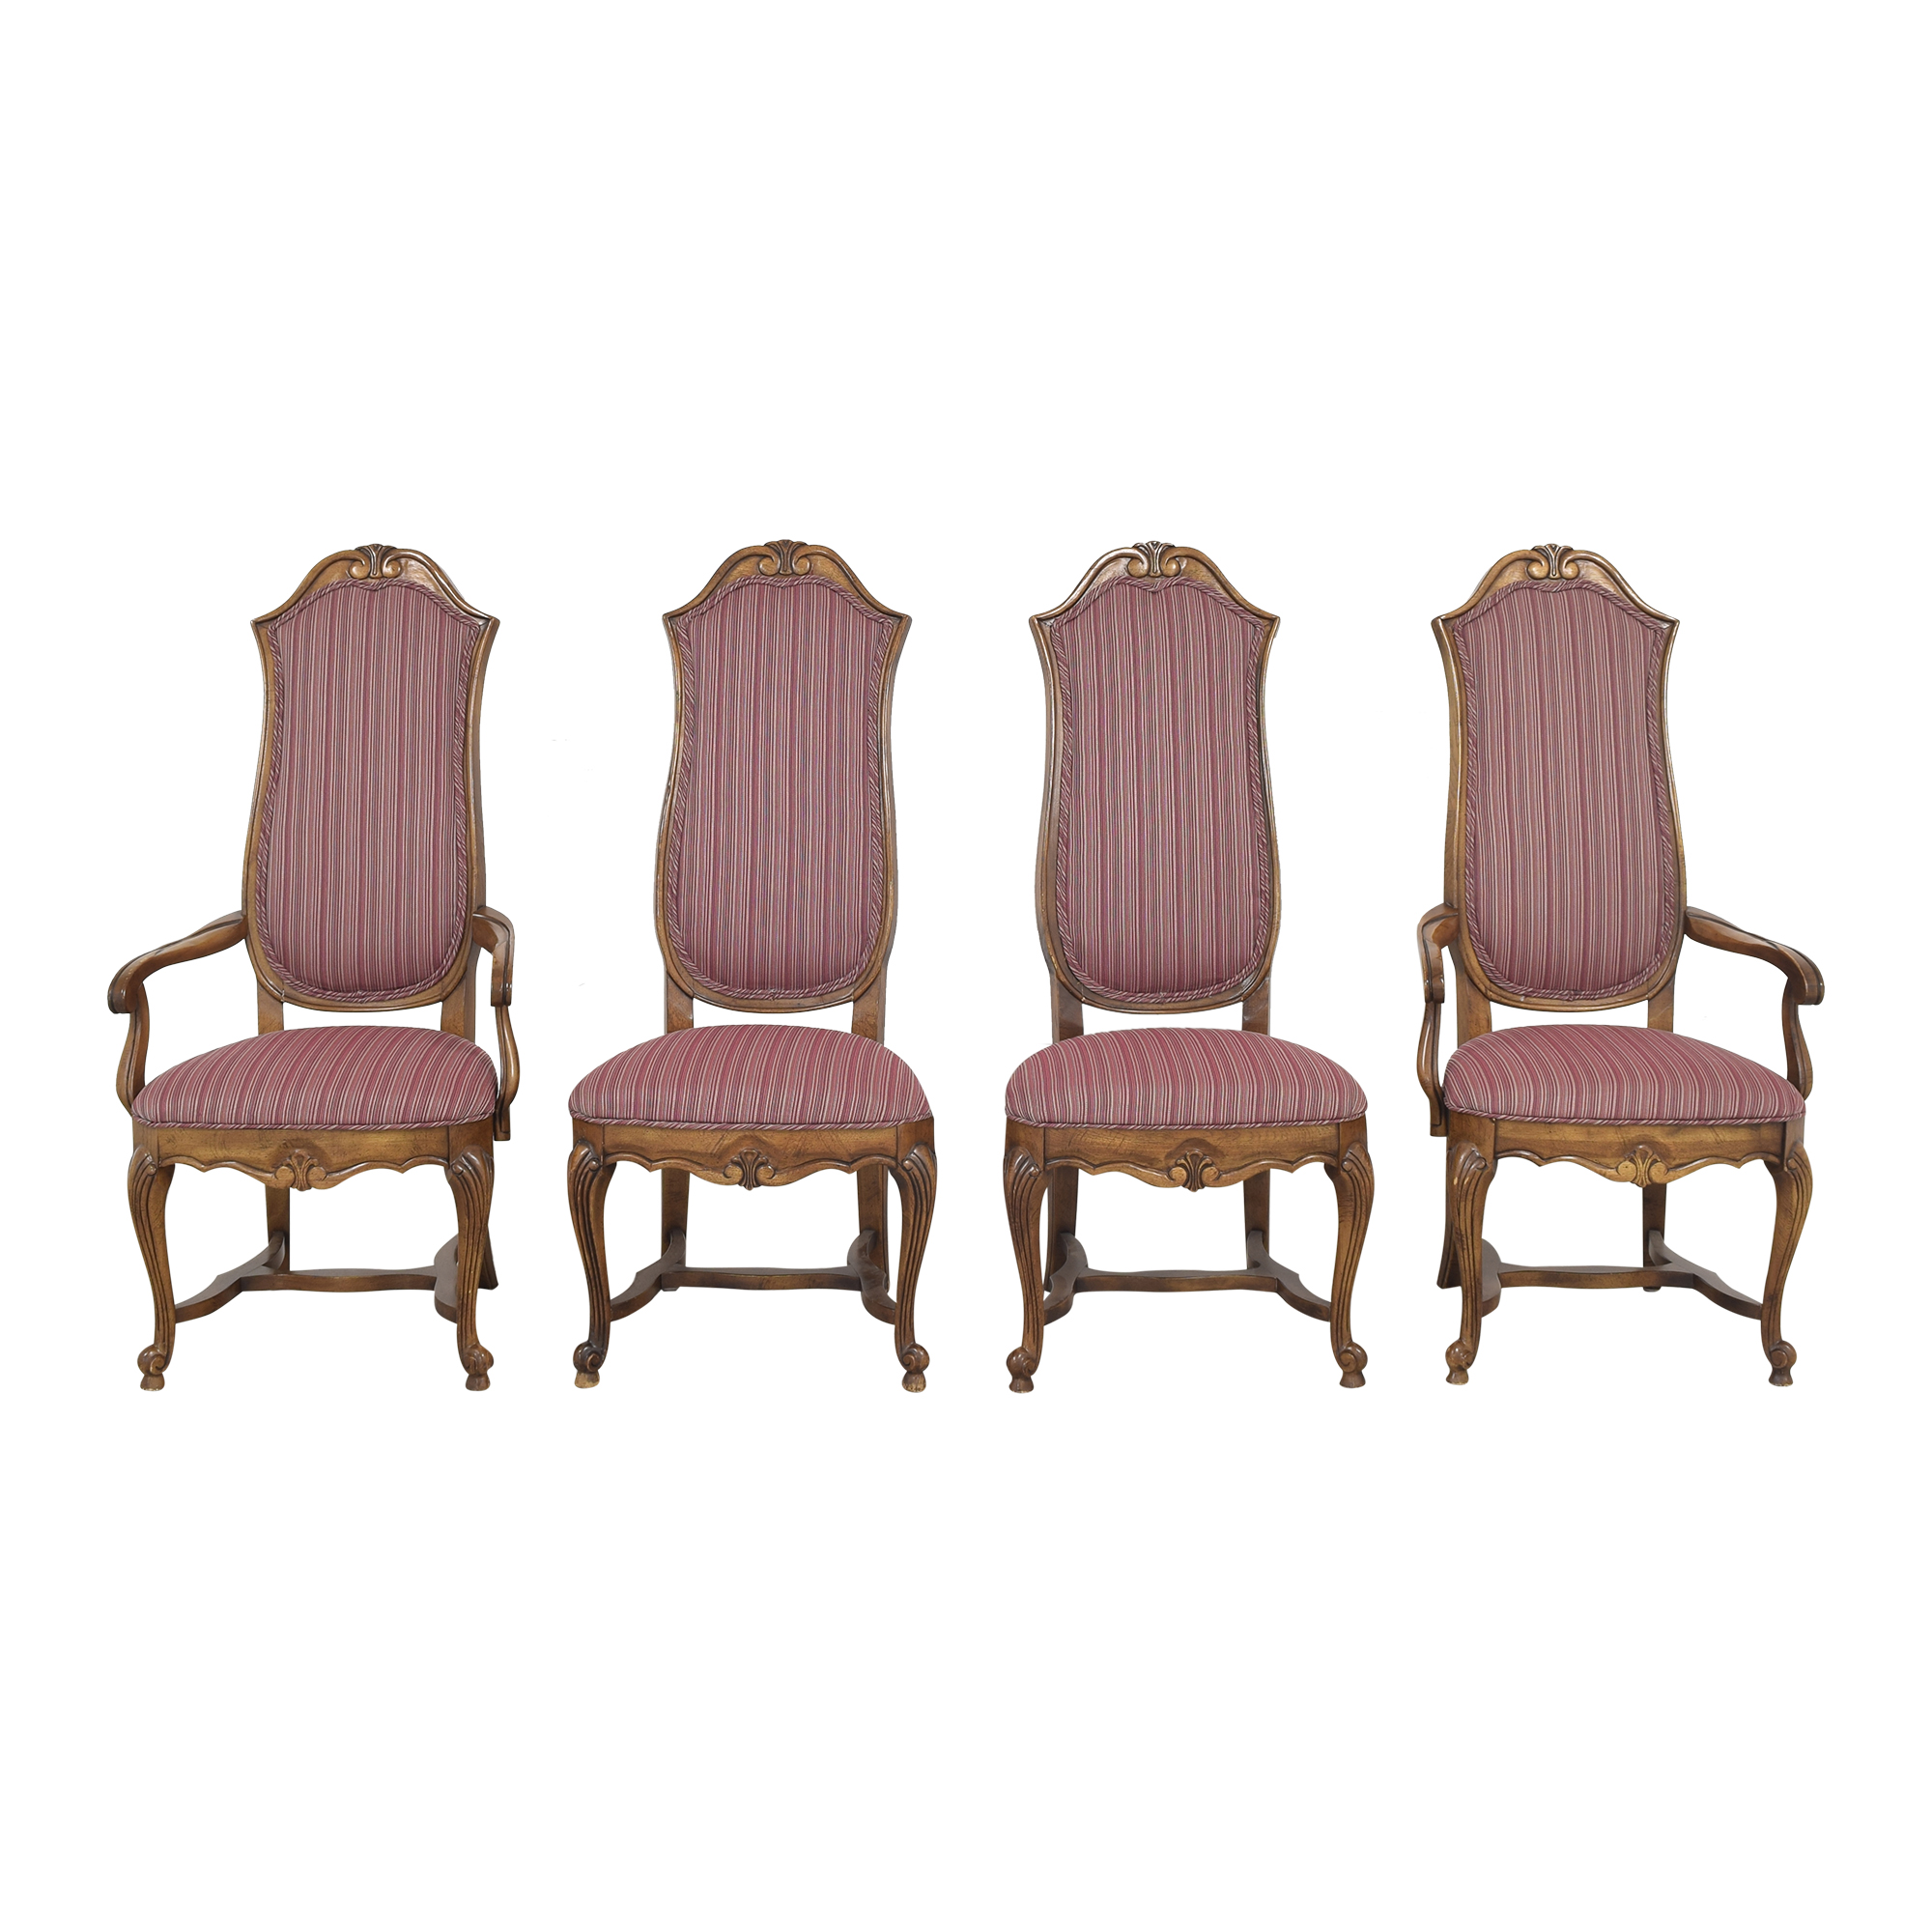 buy Ethan Allen Ethan Allen High Back Dining Chairs online